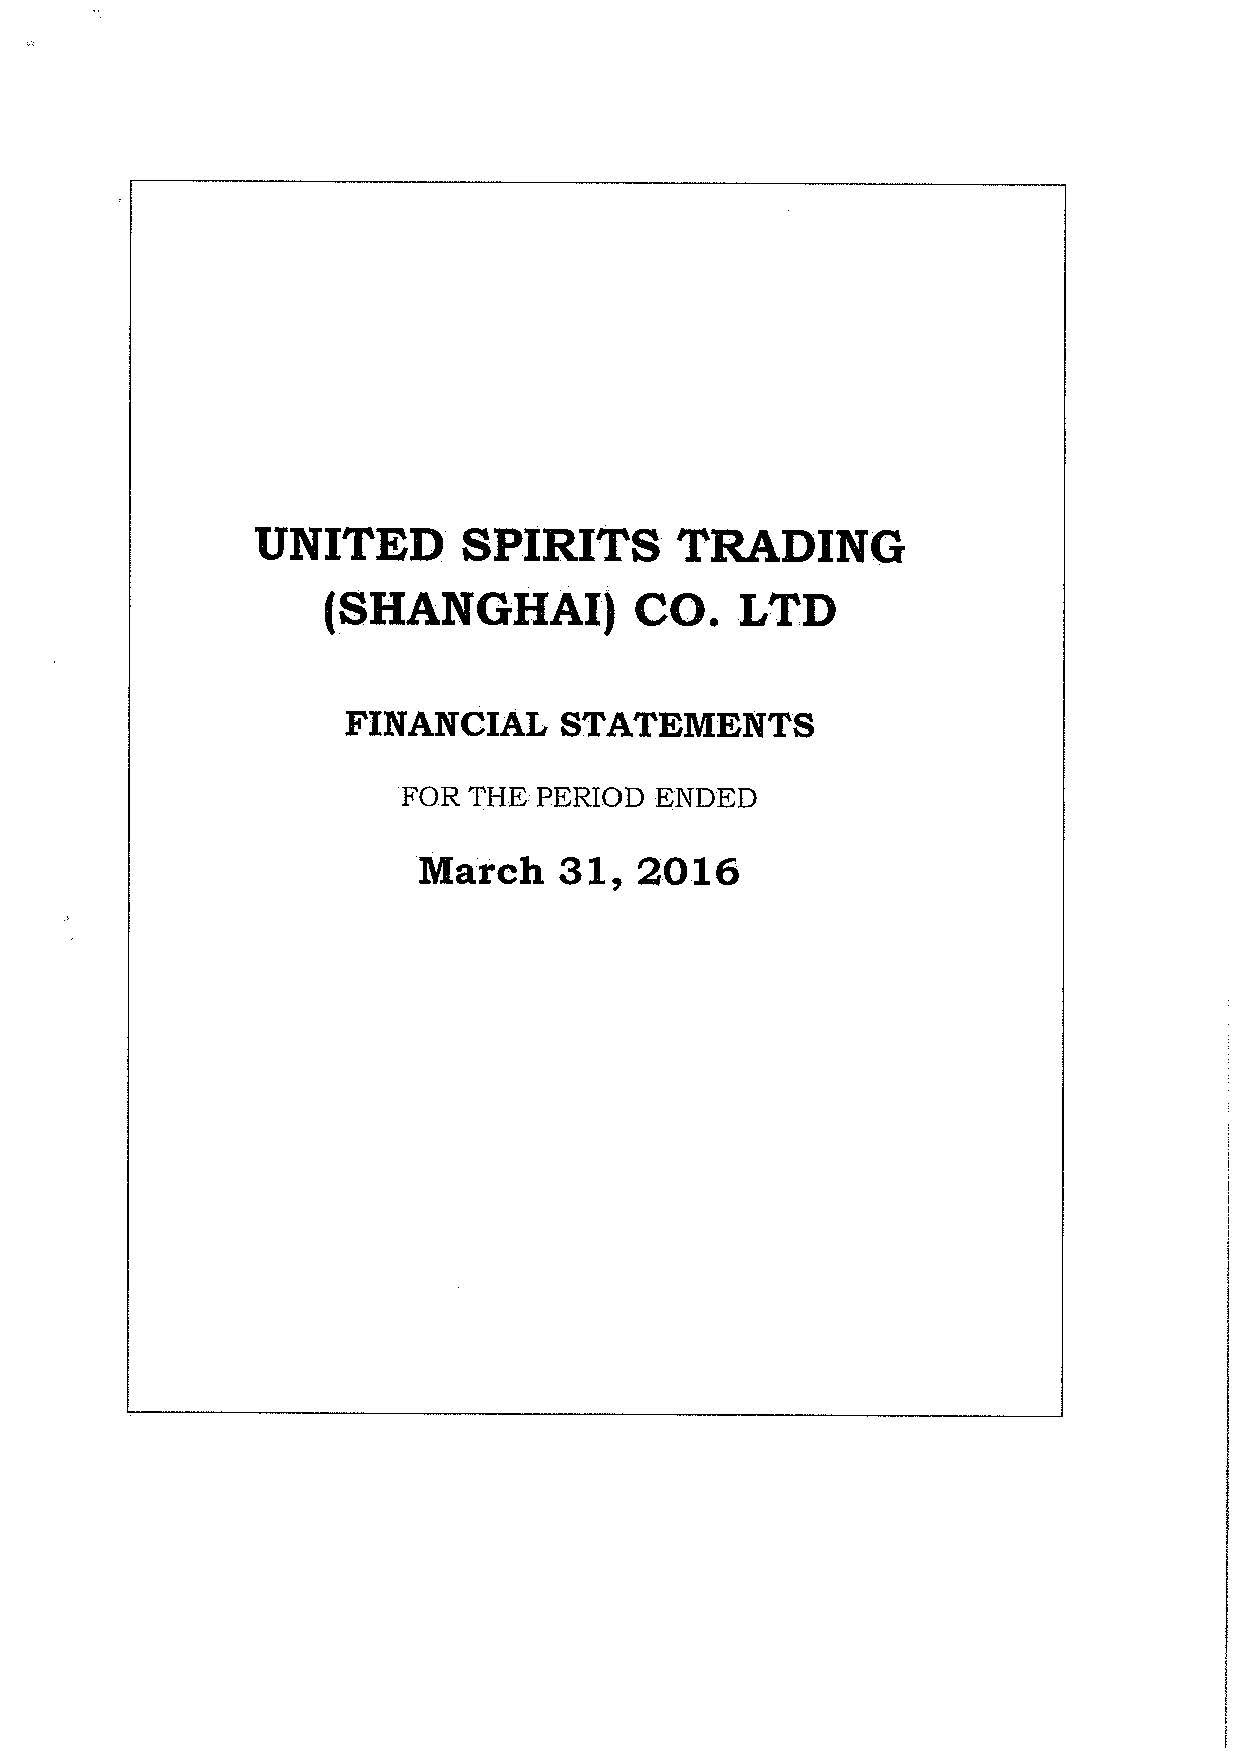 UNITED SPIRITS TRADING (SHANGHAI) CO. LTD Result 2015-2016